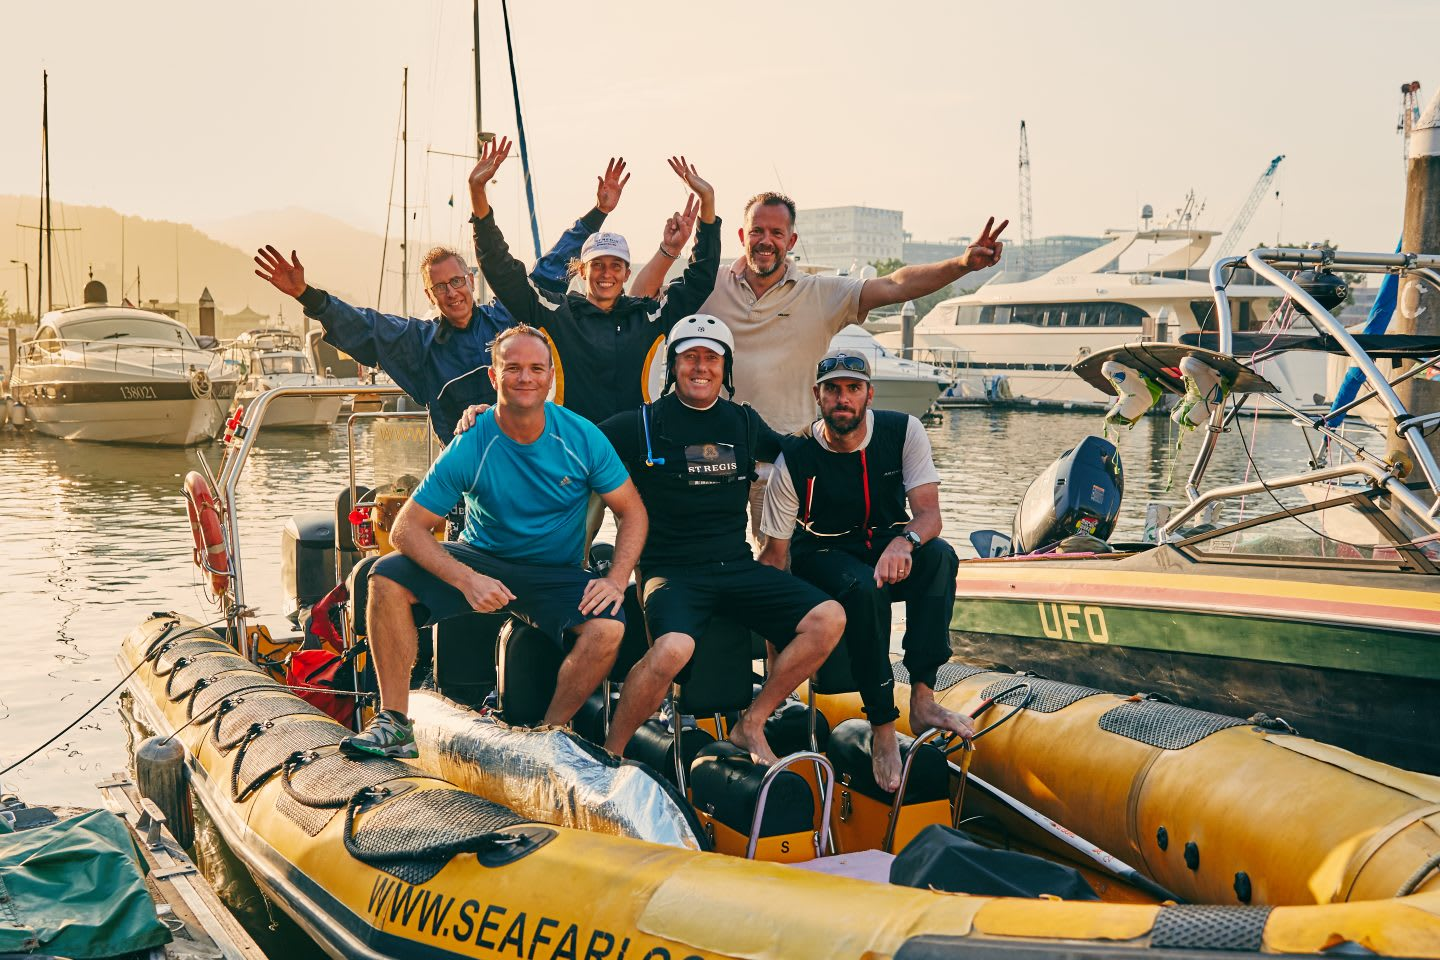 A team of sailors on a boat at the port. They smile into the camera. Nick Moloney, team, teamwork, sailing, career, success, preparation, motivation, mindset, GamePlan A